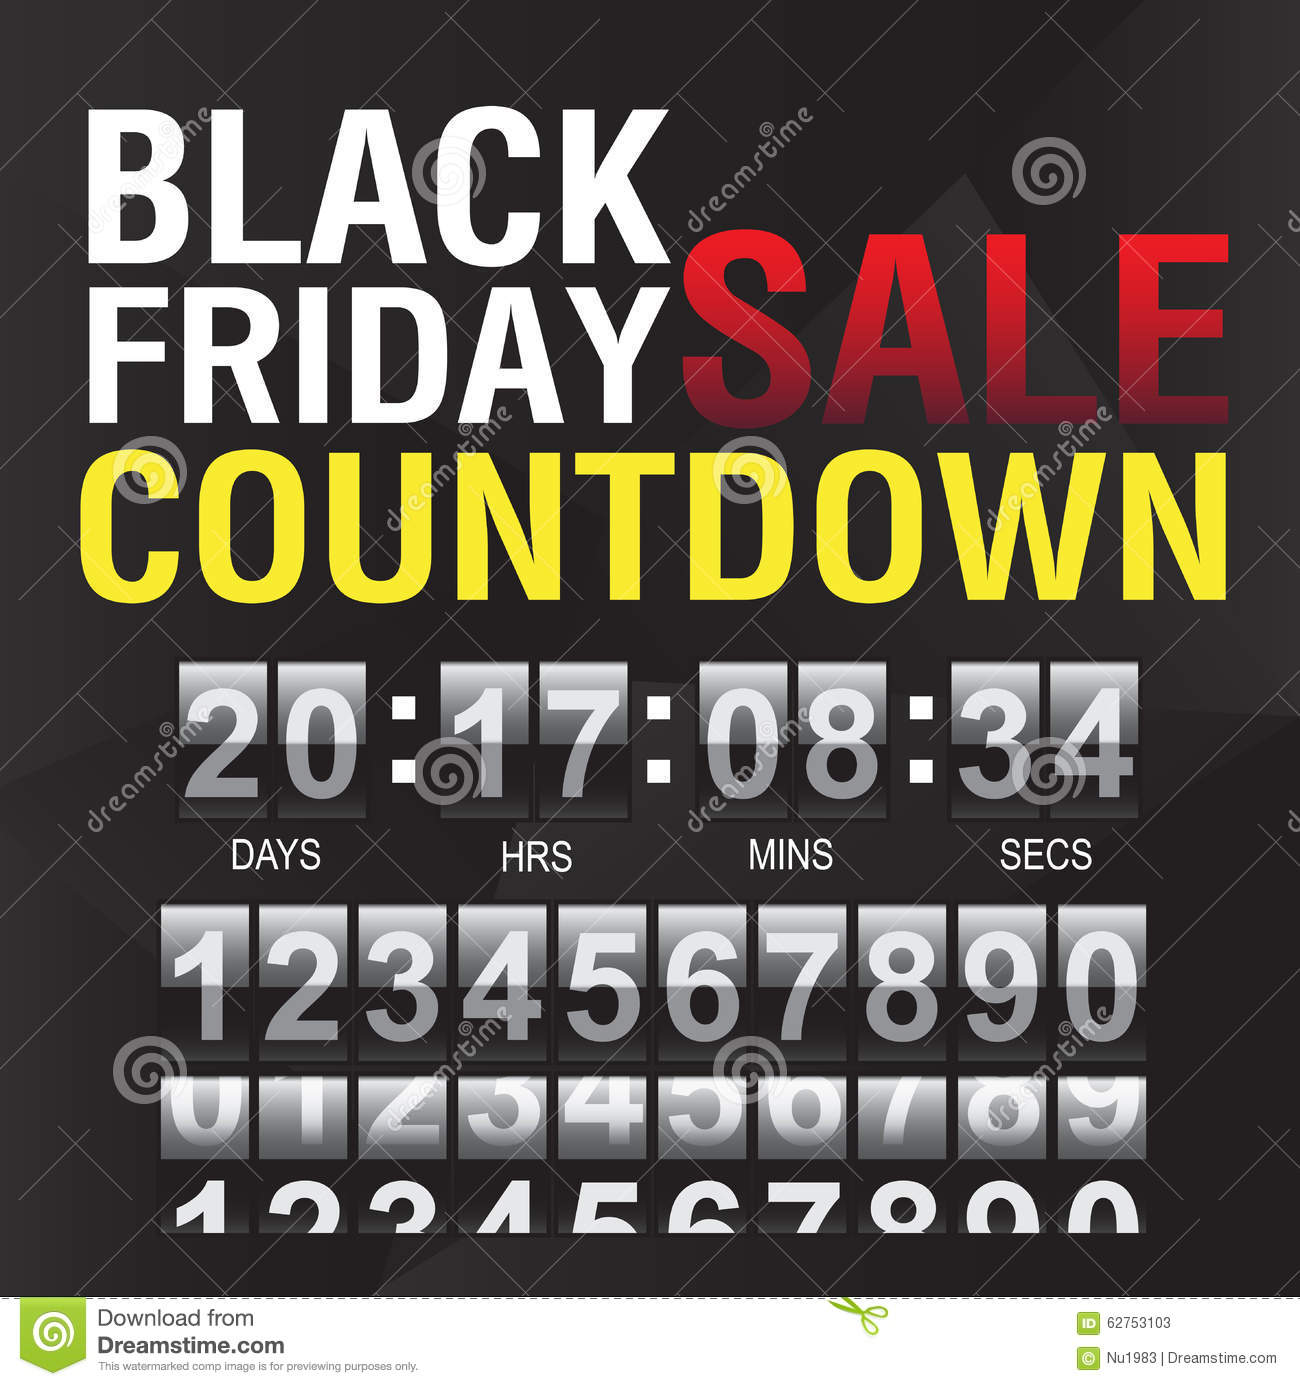 Black Friday Countdown Timer Template Stock Vector Illustration Of